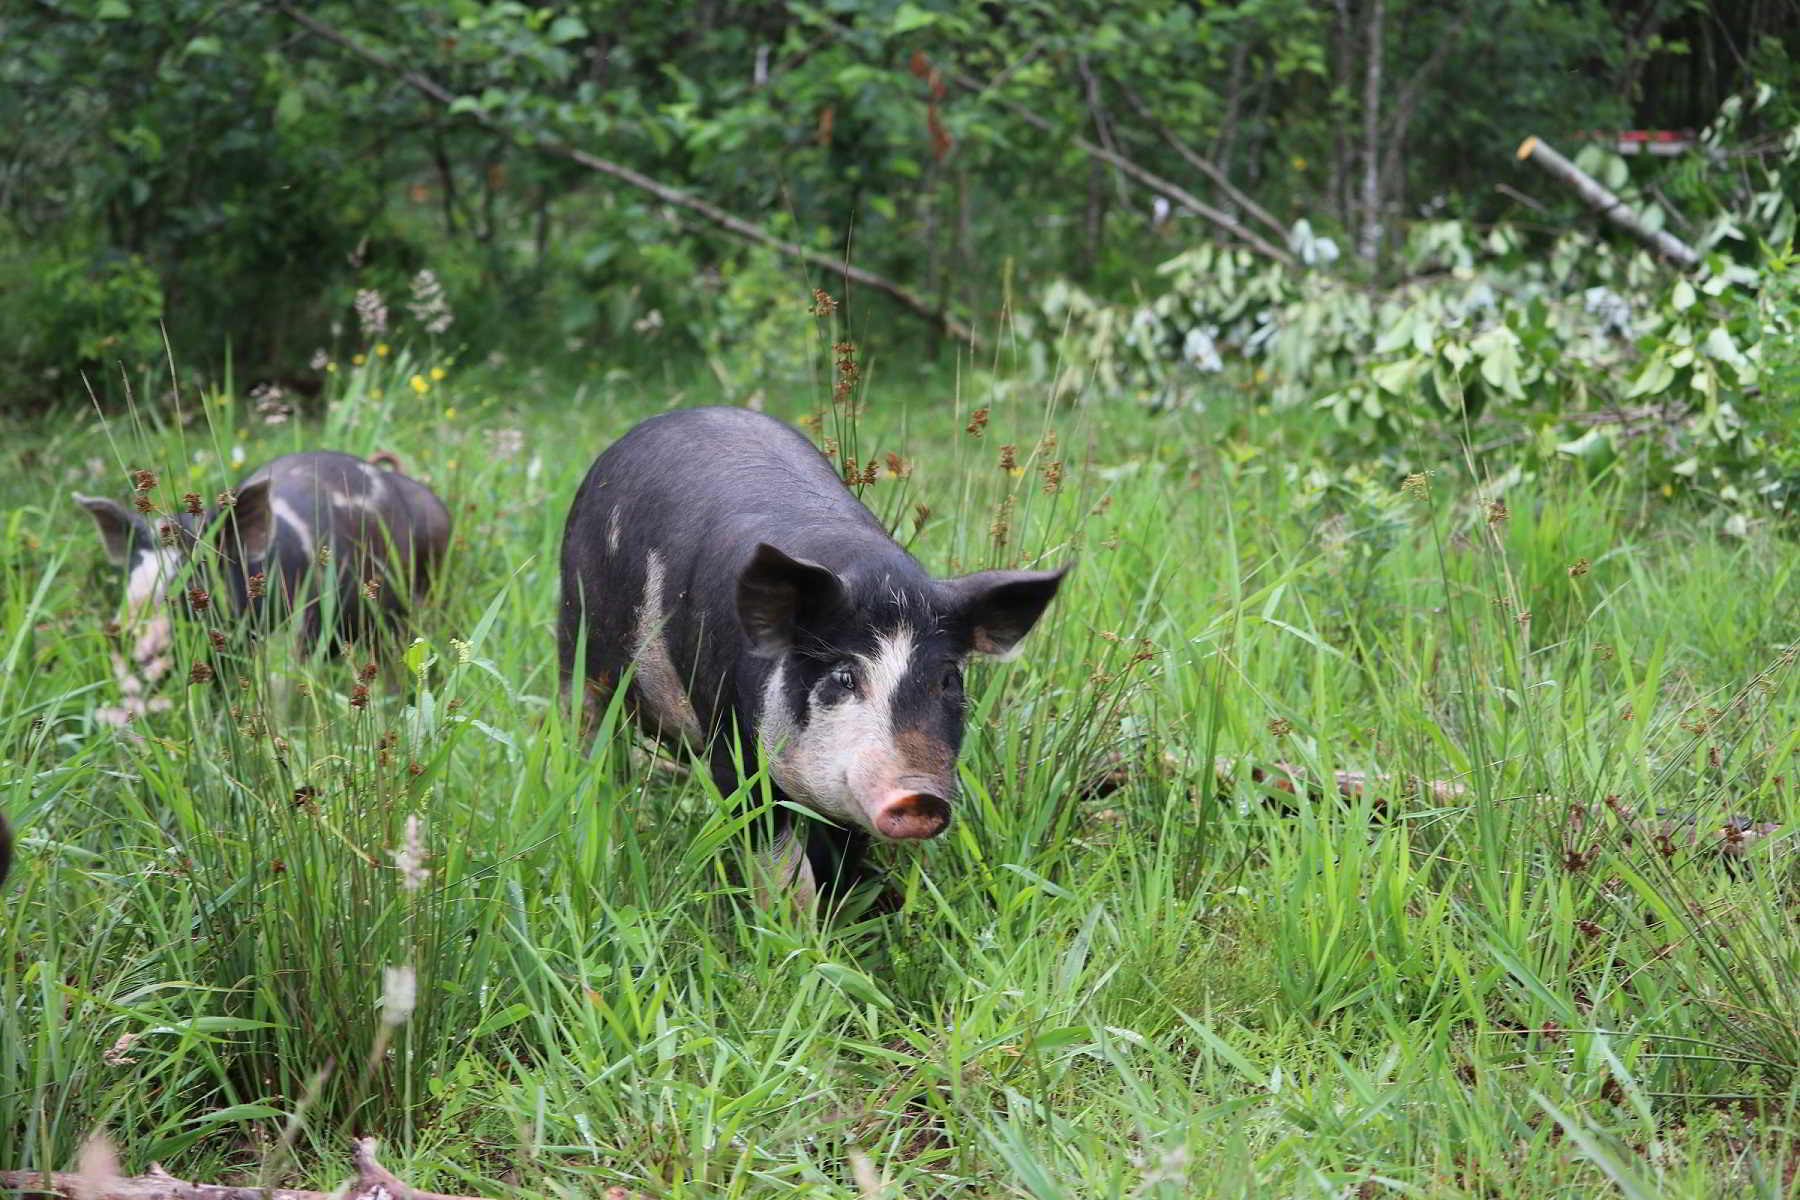 Lost Savanna Farm pig in June